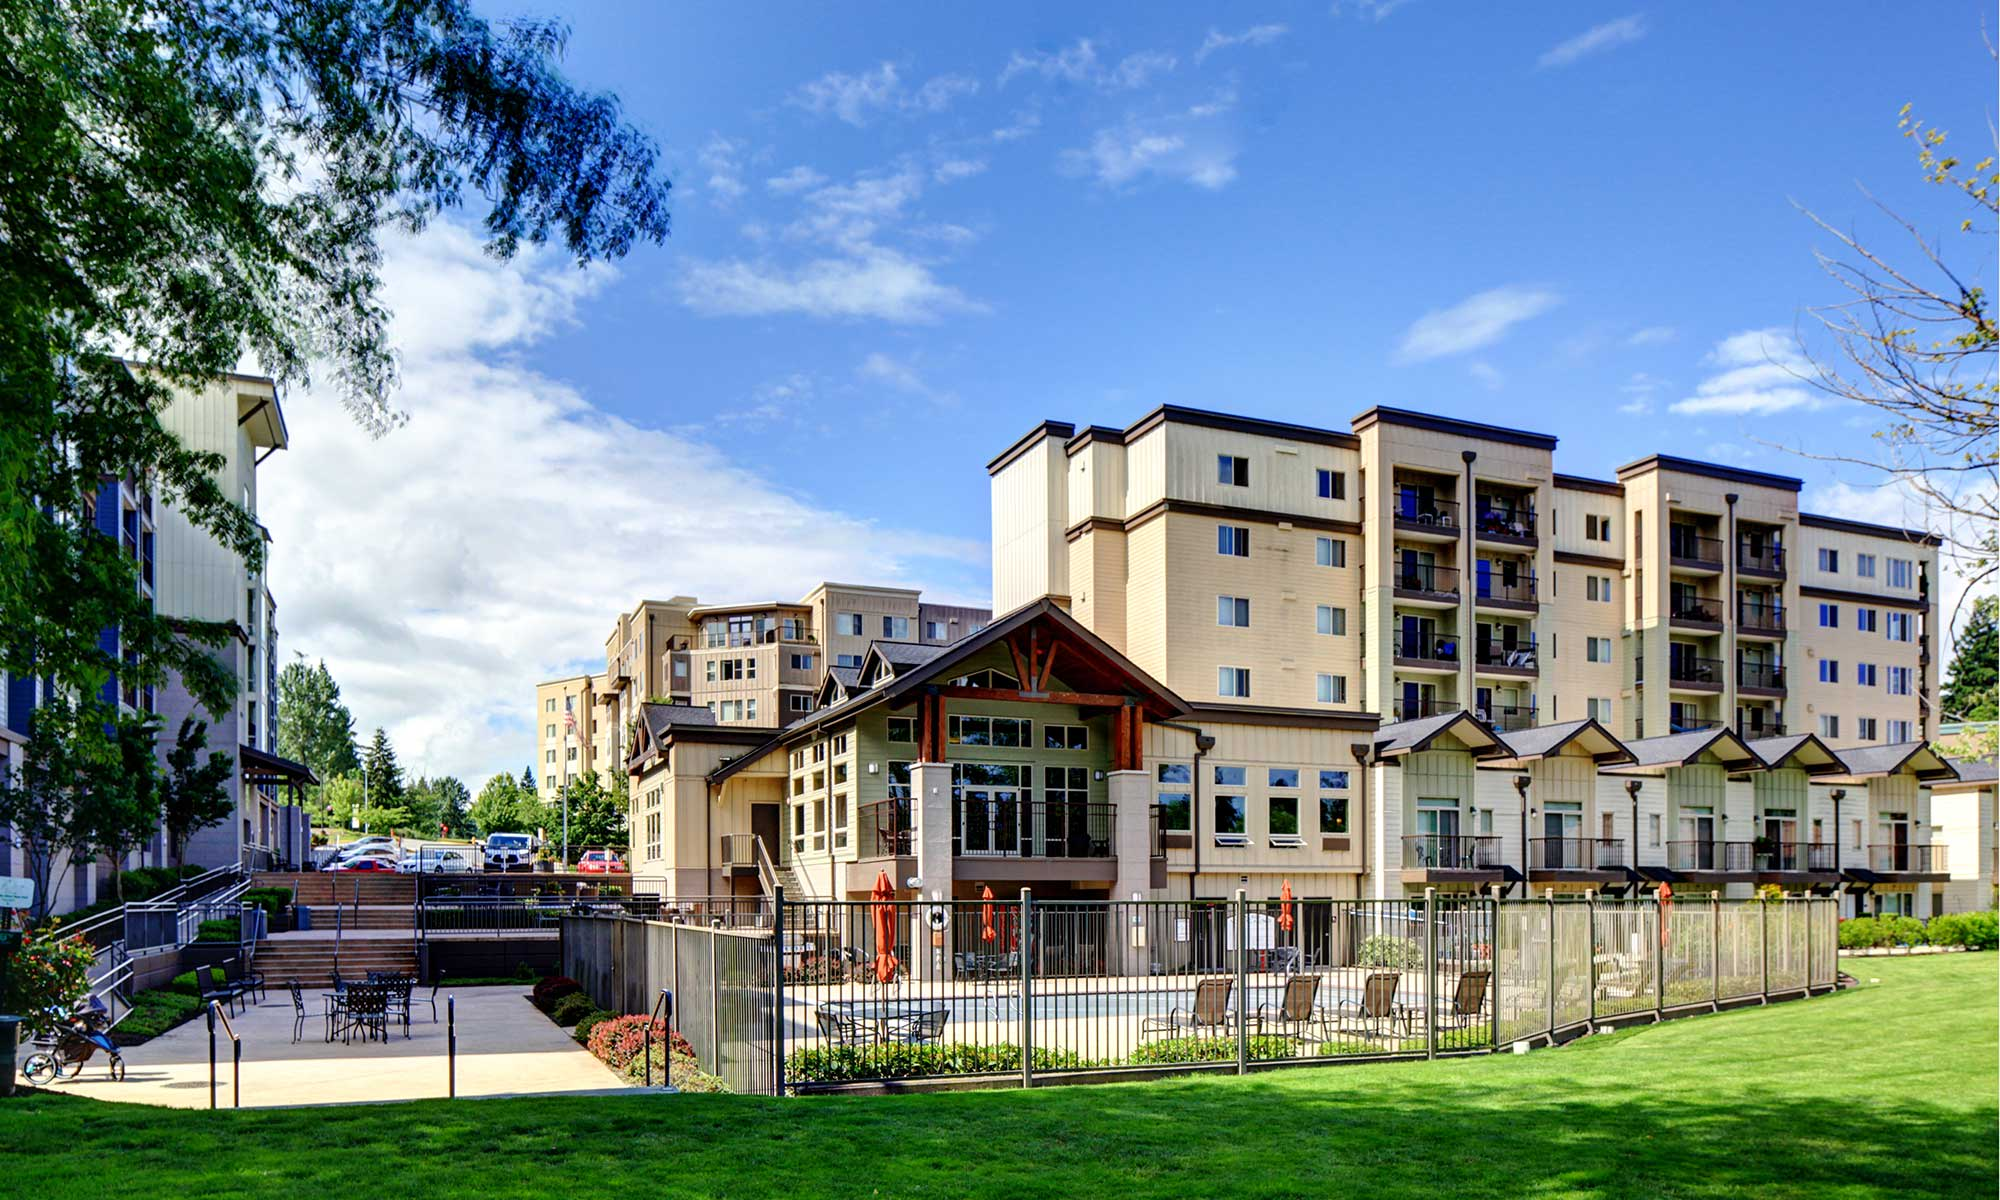 Be dazzled at unspeakable beauty in luxury apartments in Shoreline, WA